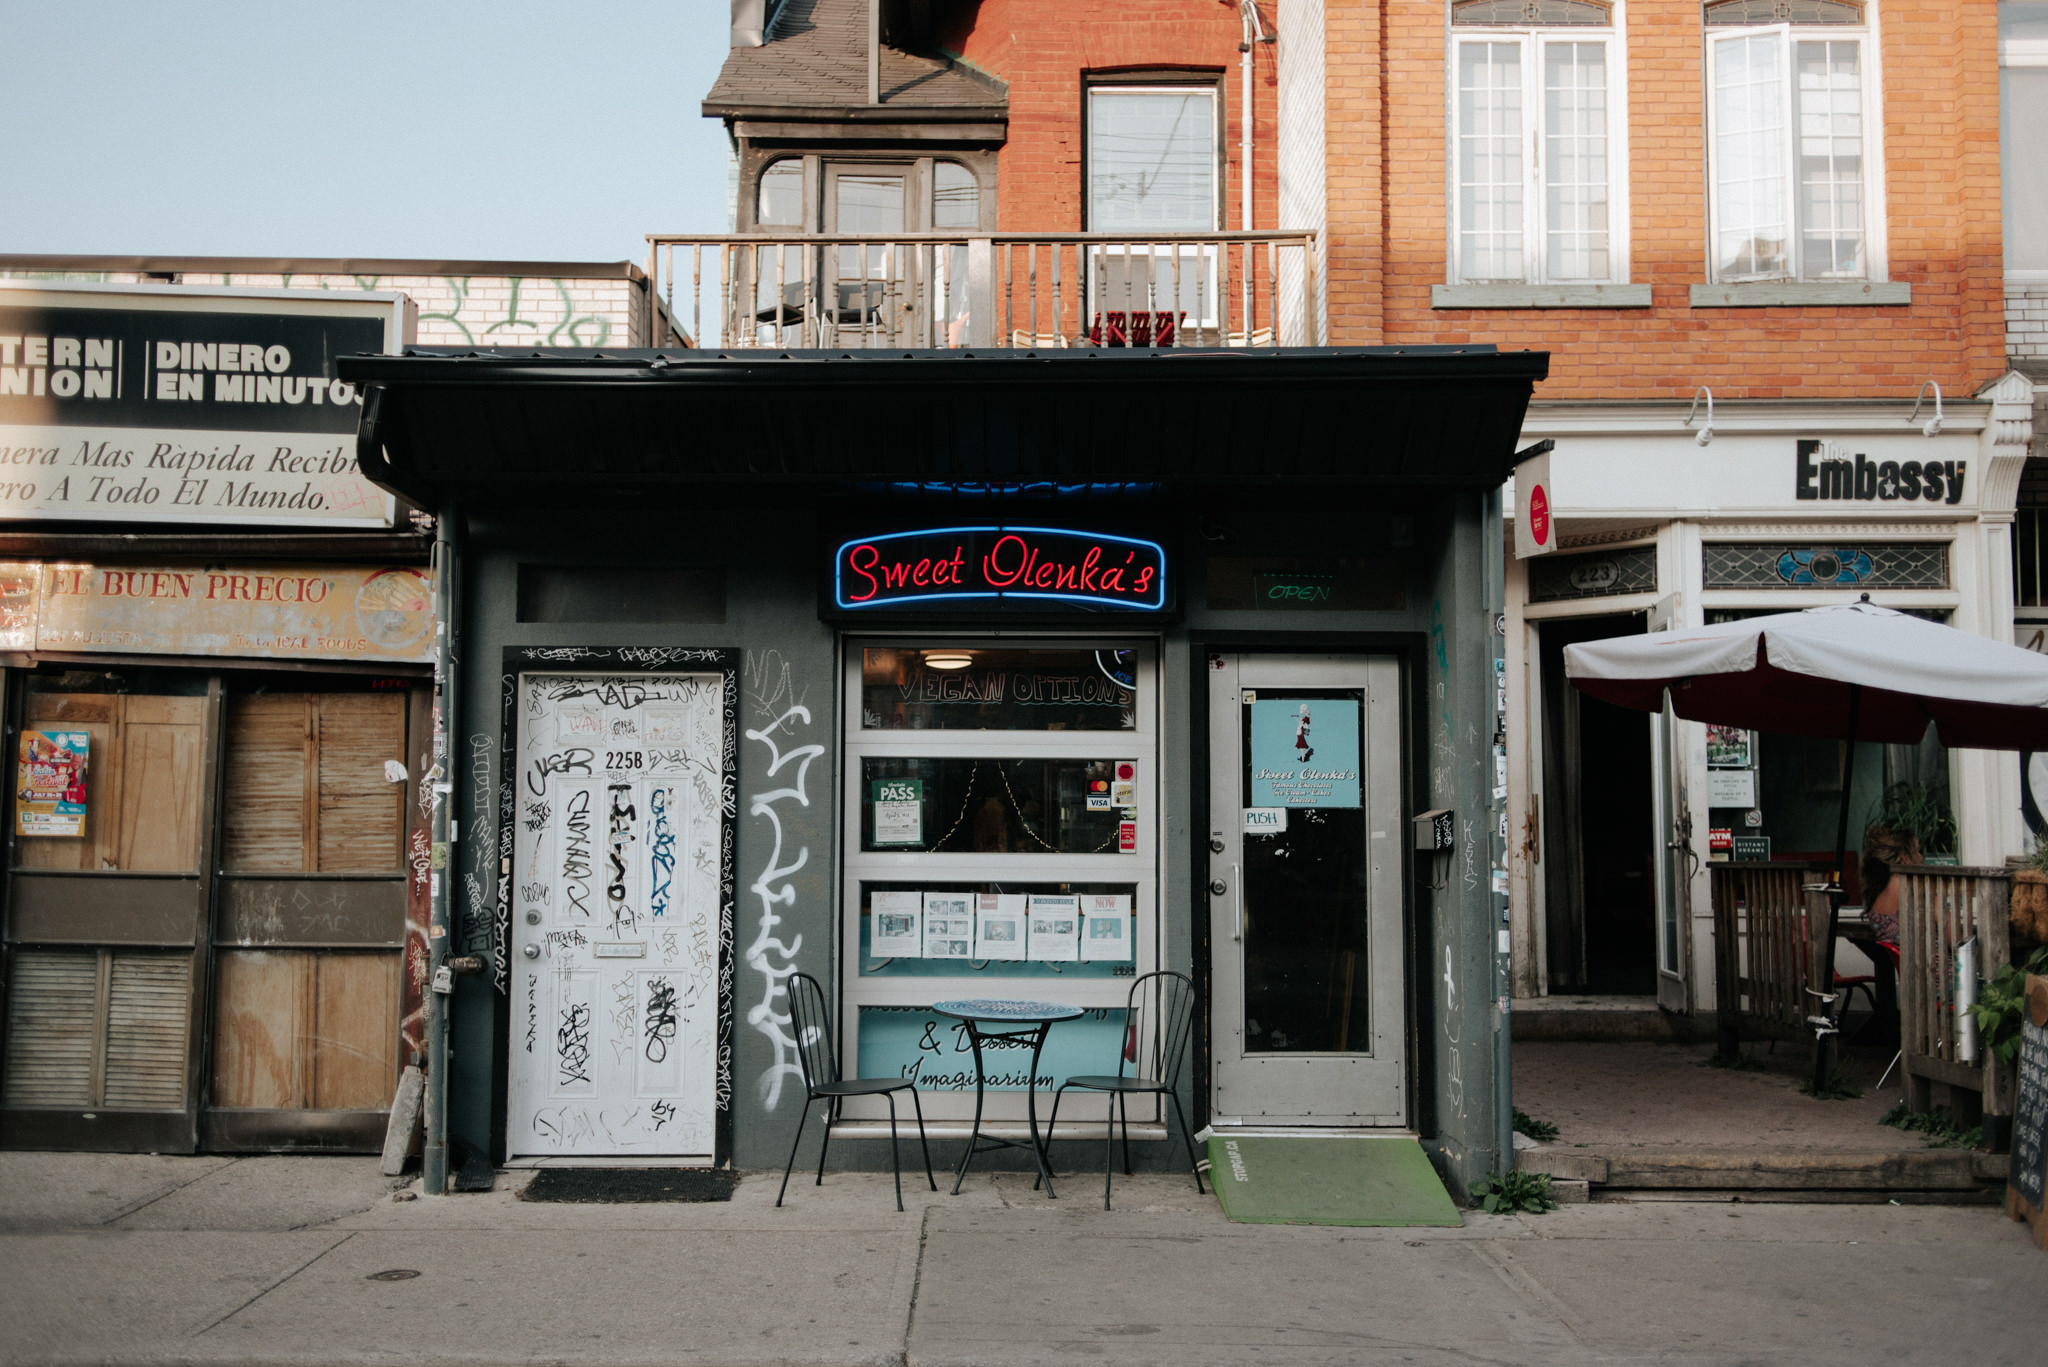 Kensington Market Engagement Shoot at Sweet Olenkas